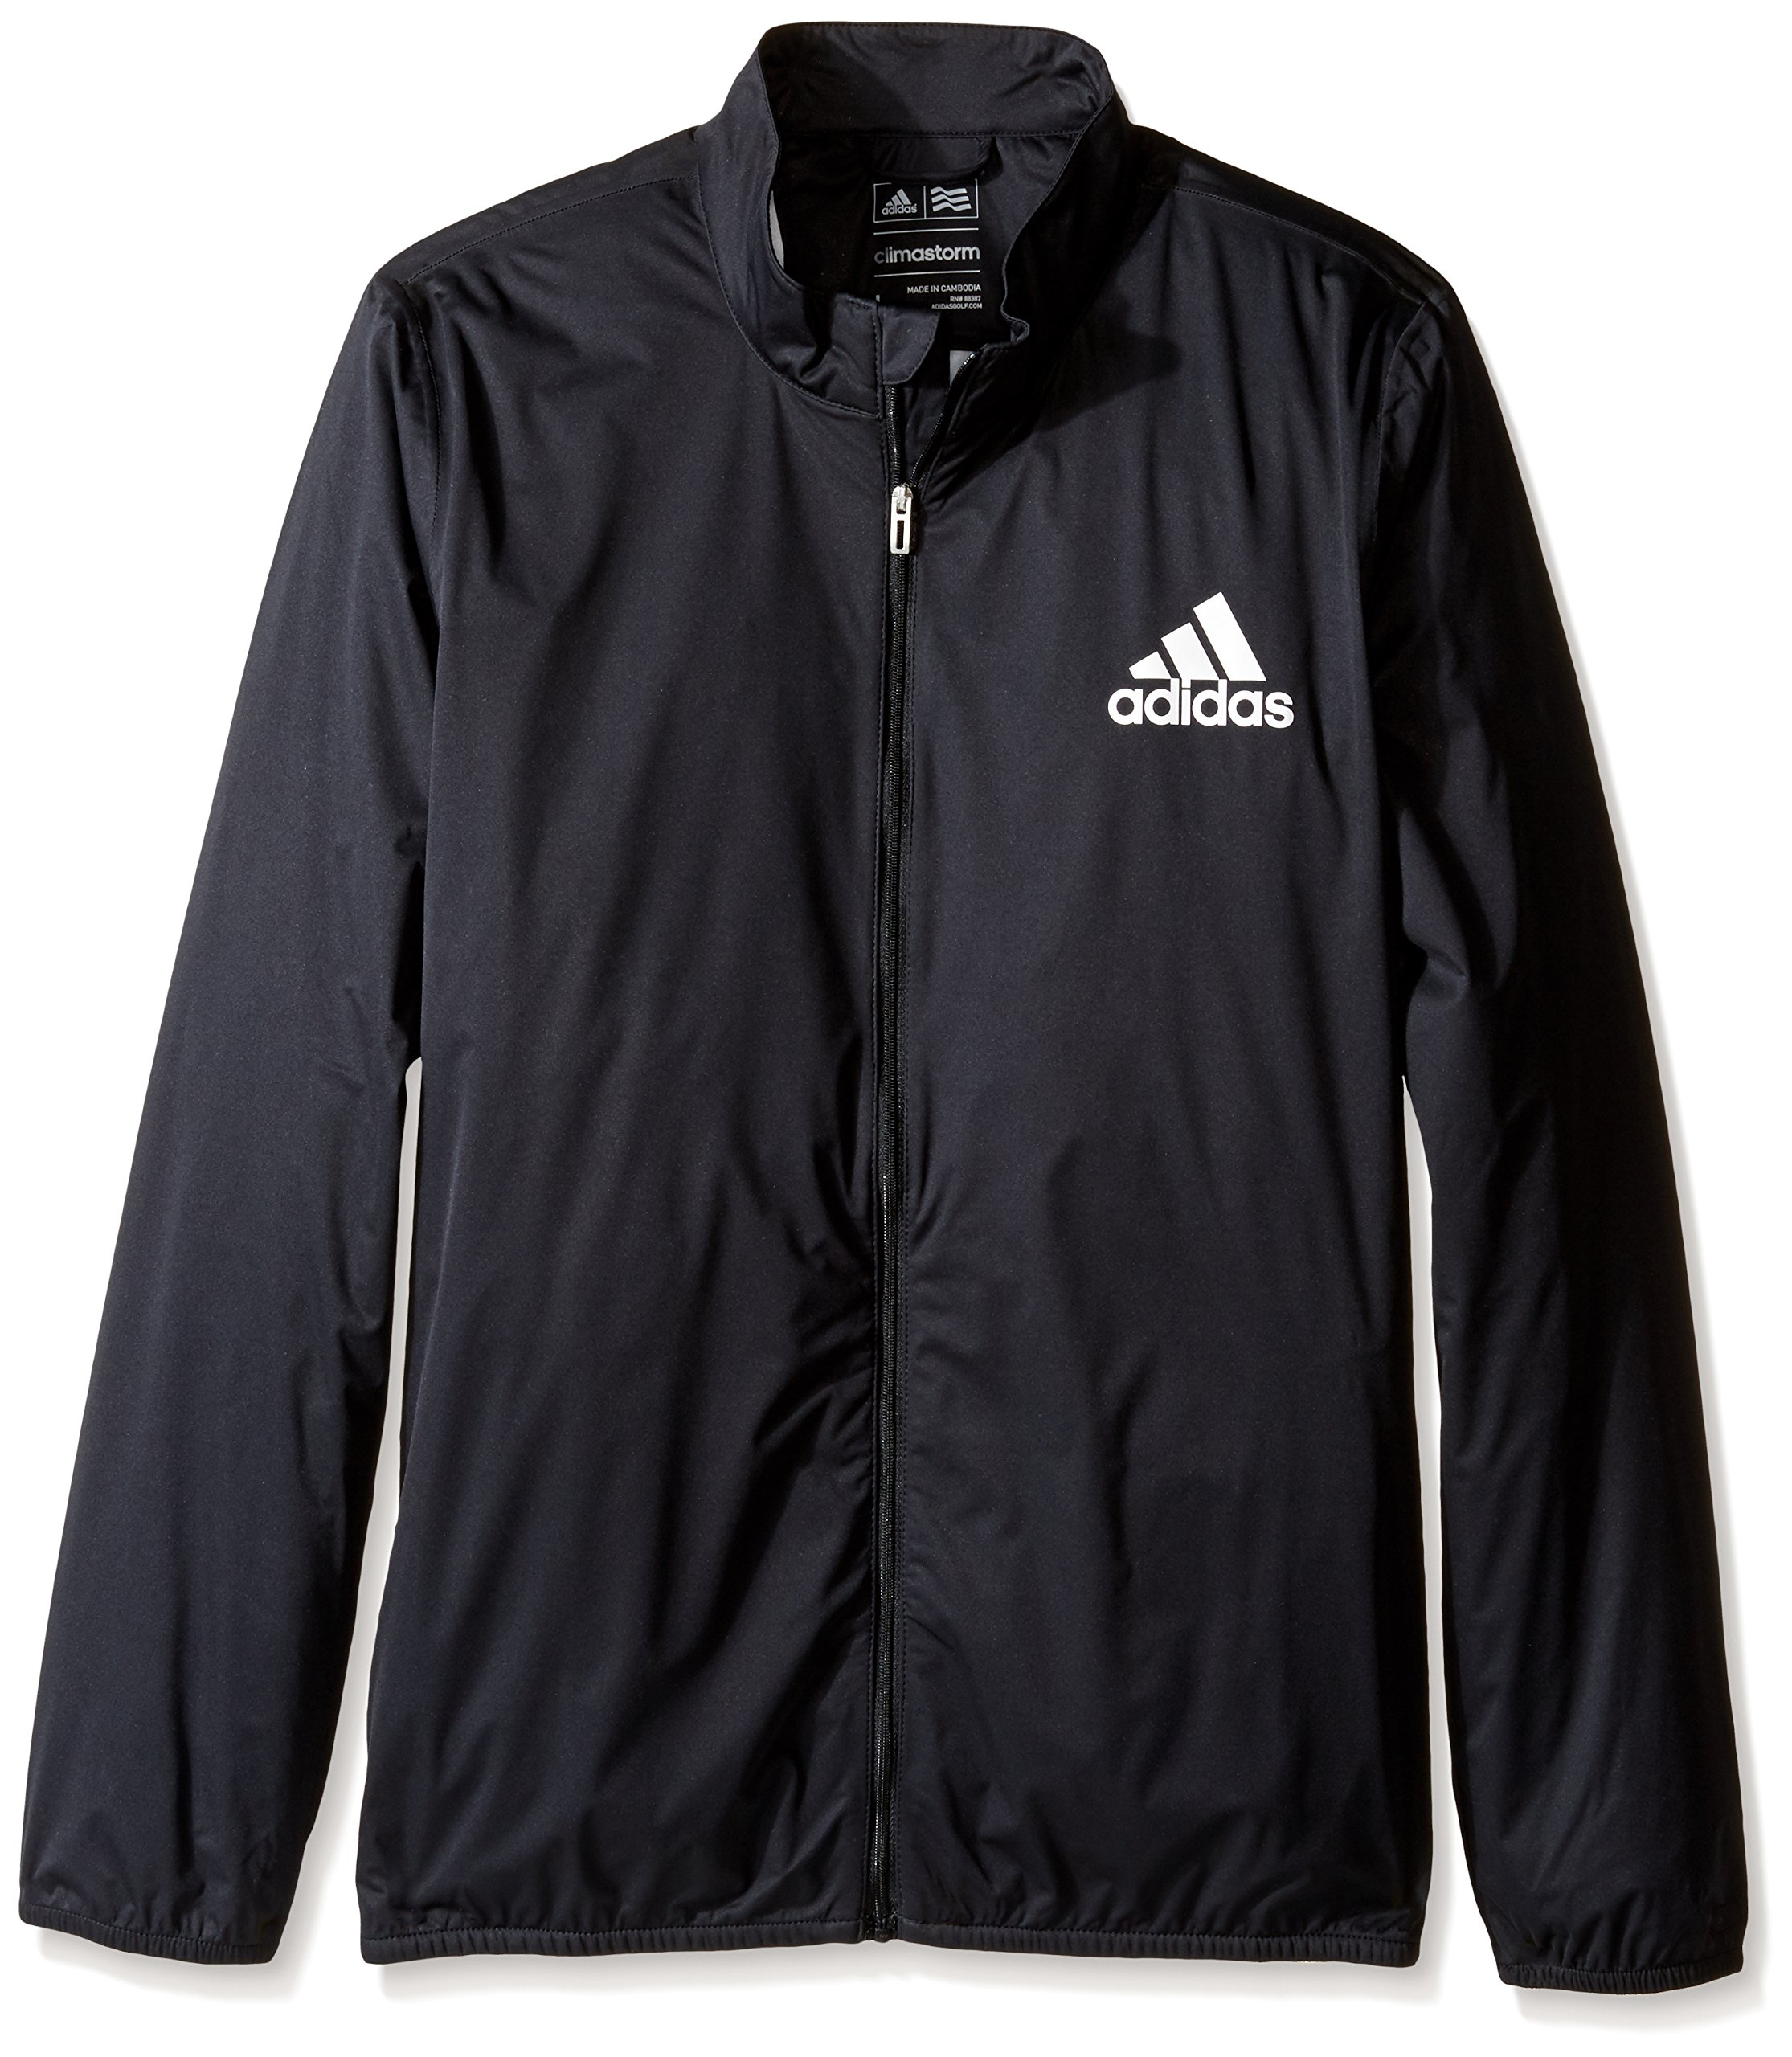 adidas Golf Climastorm Jacket, Black, Medium by adidas